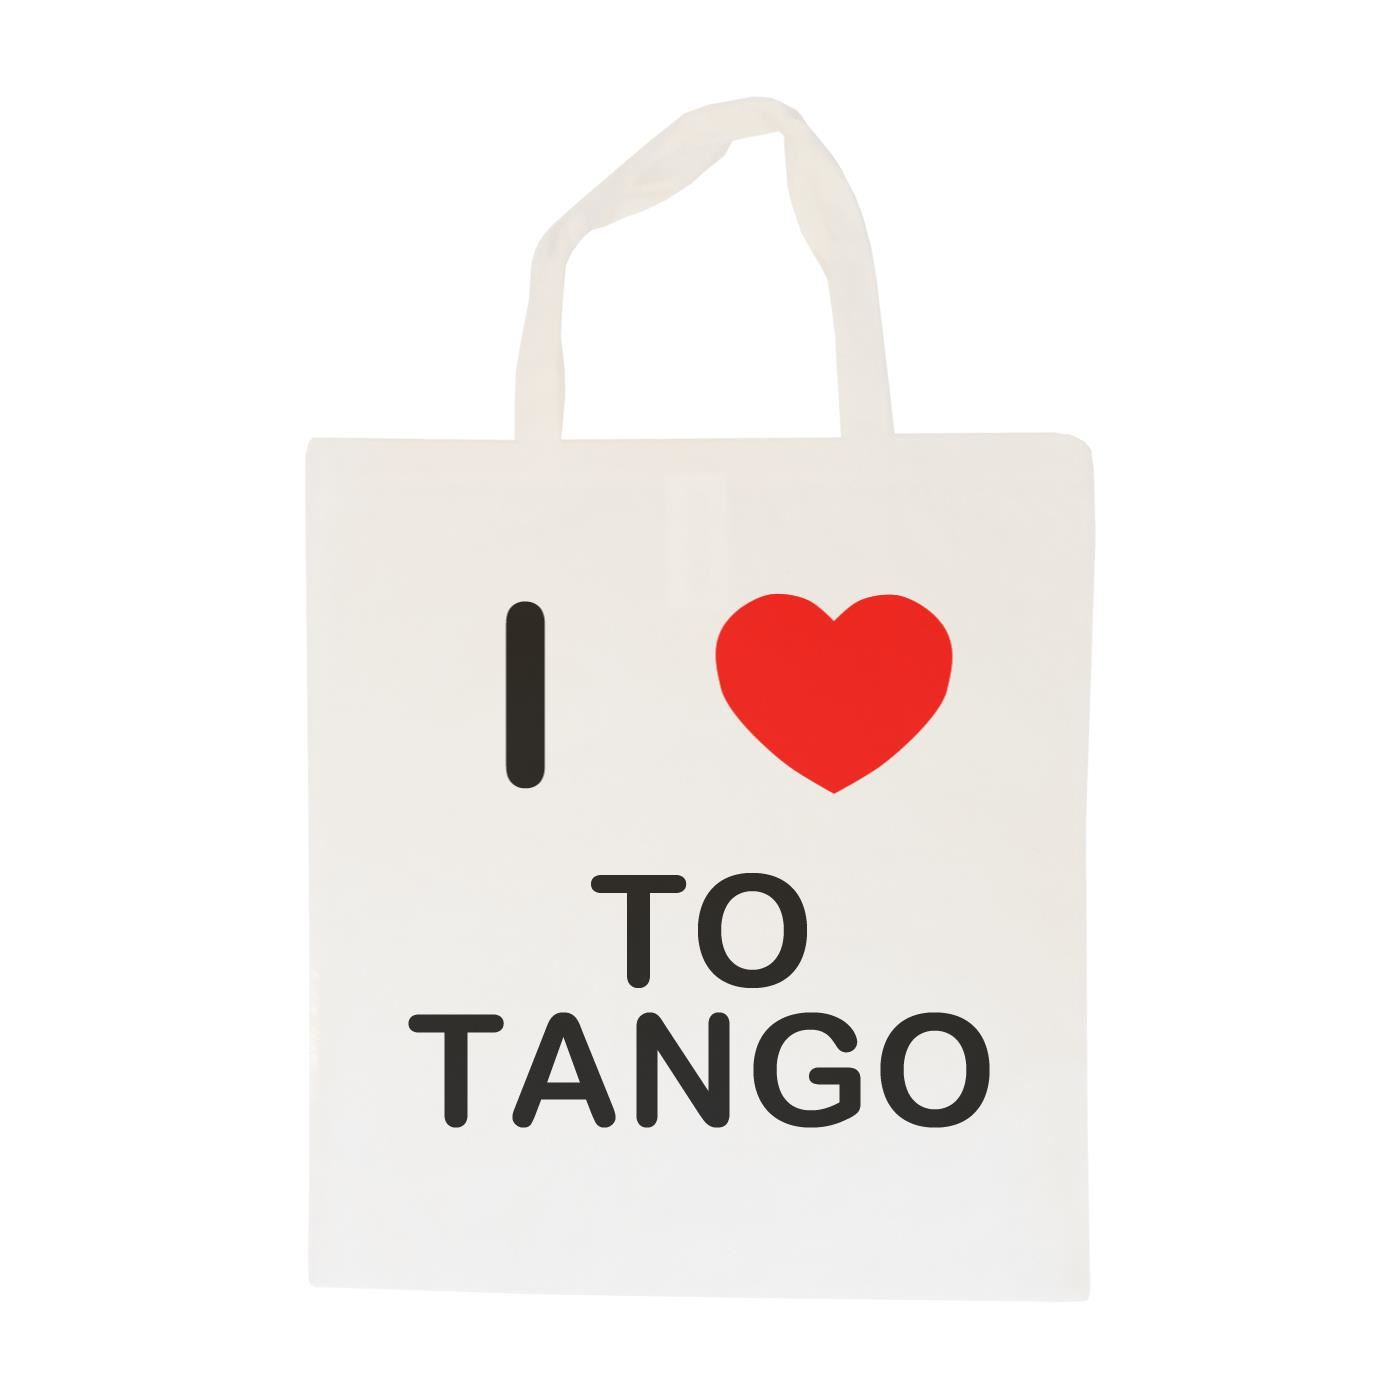 I Love To Tango - Cotton Bag | Size choice Tote, Shopper or Sling